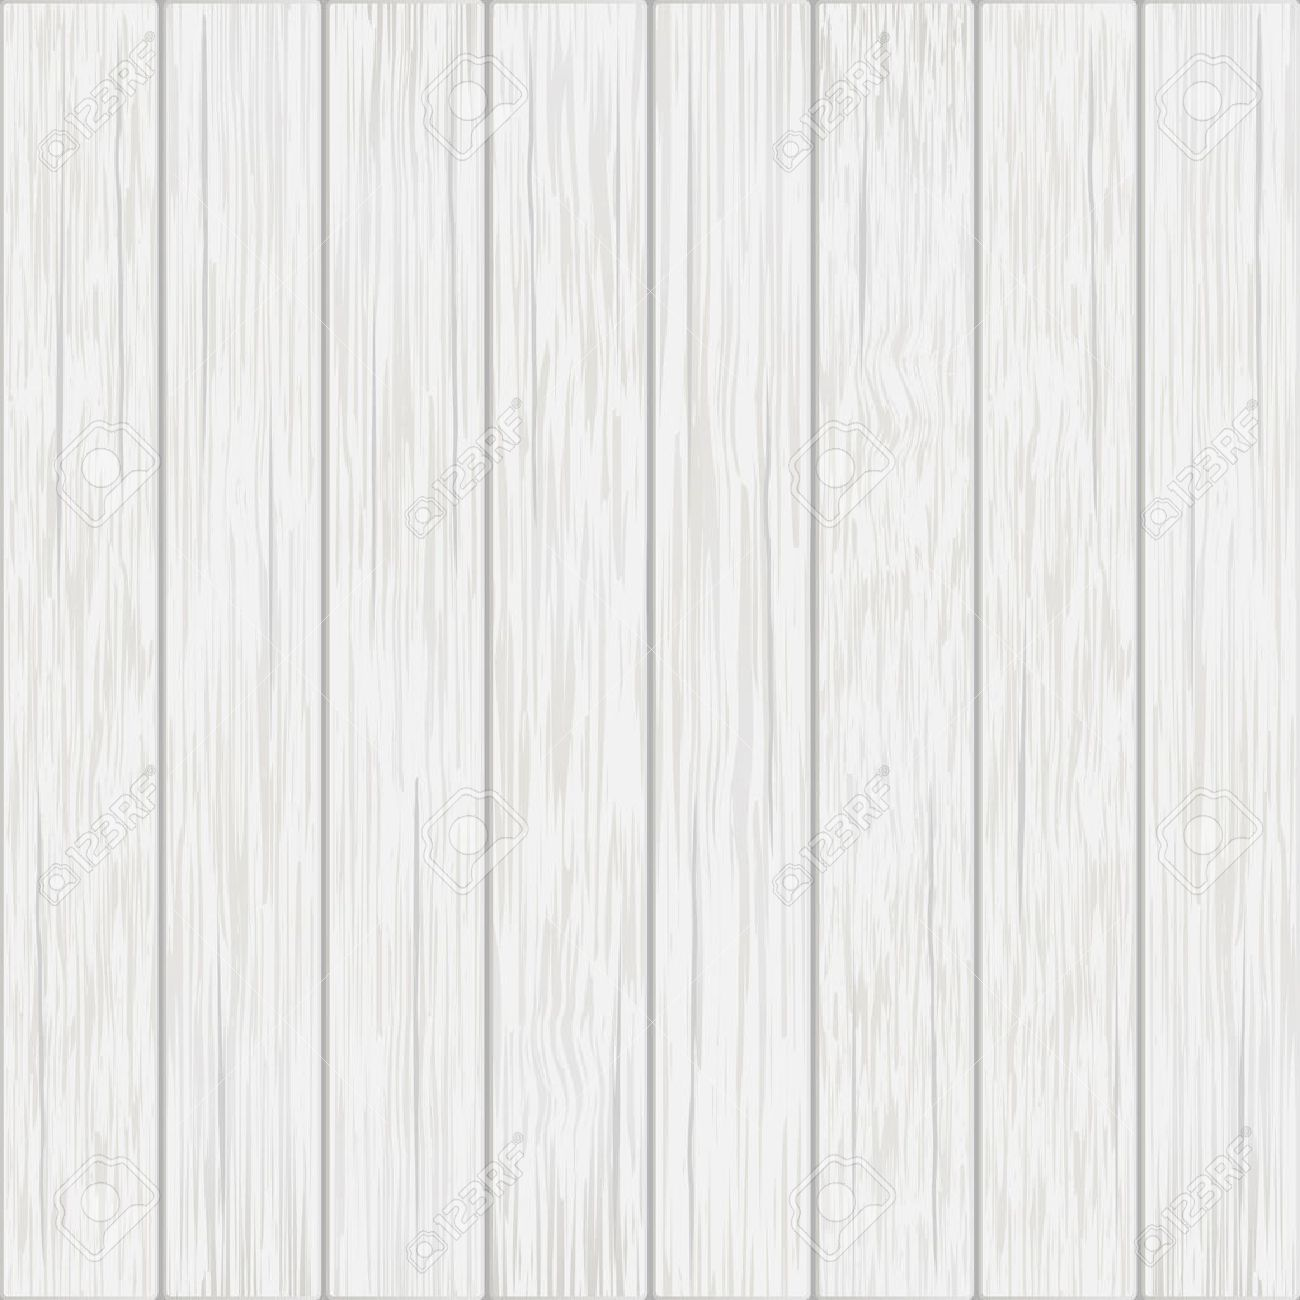 white wood boards - vector background Stock Vector - 44229880